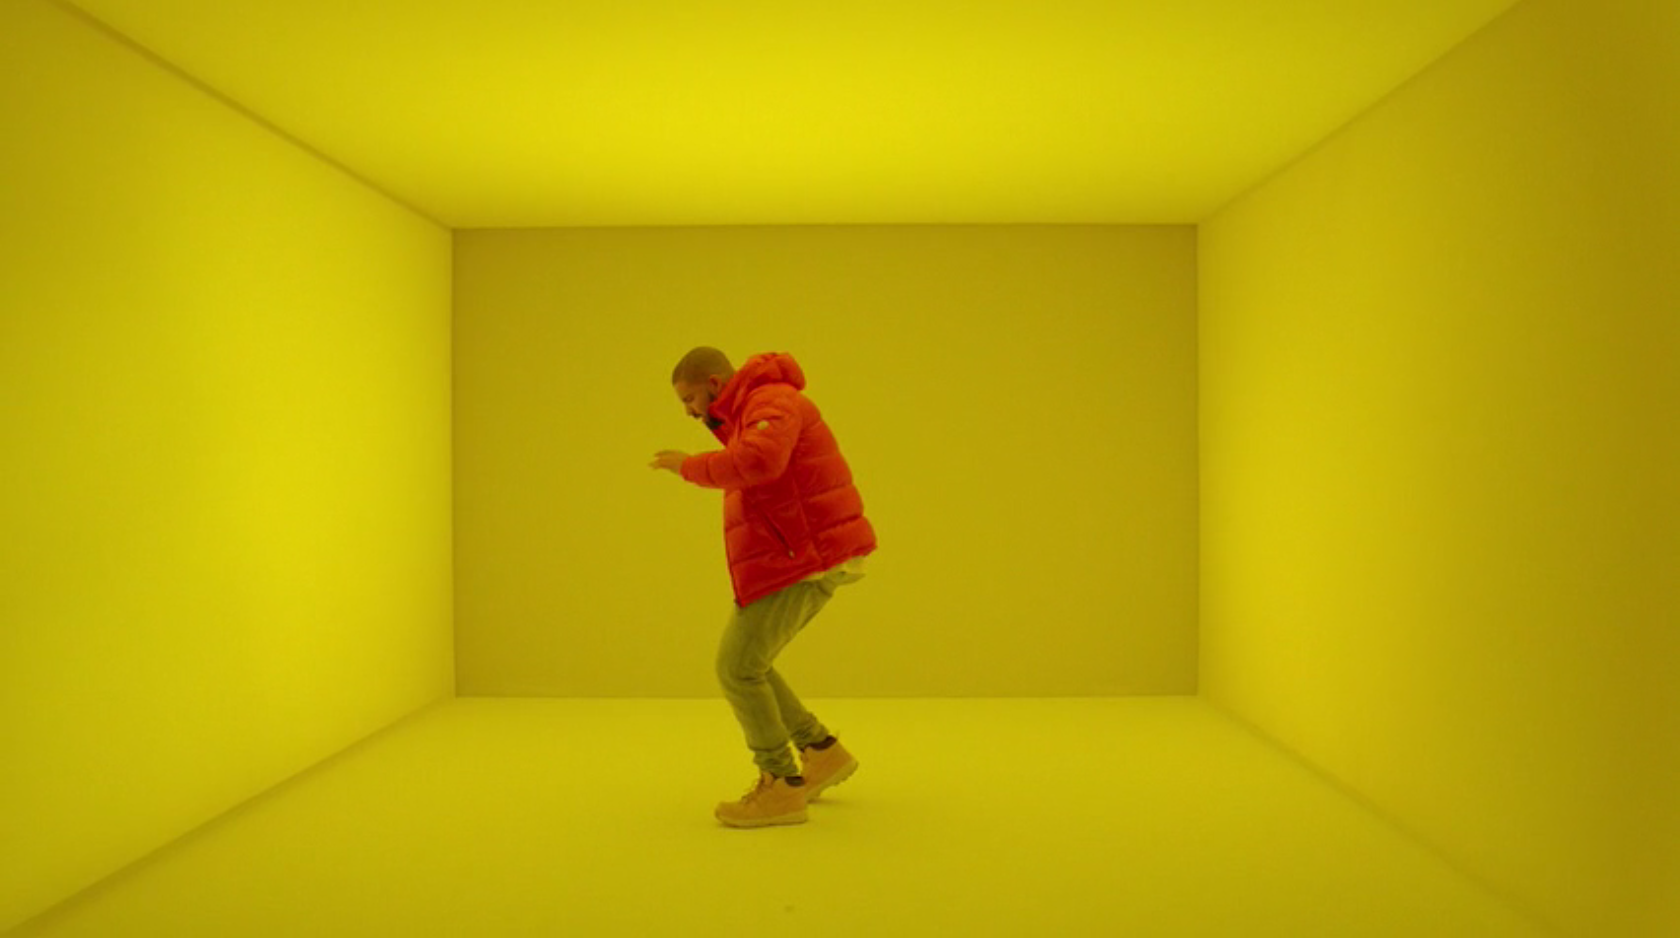 Hotline-Bling